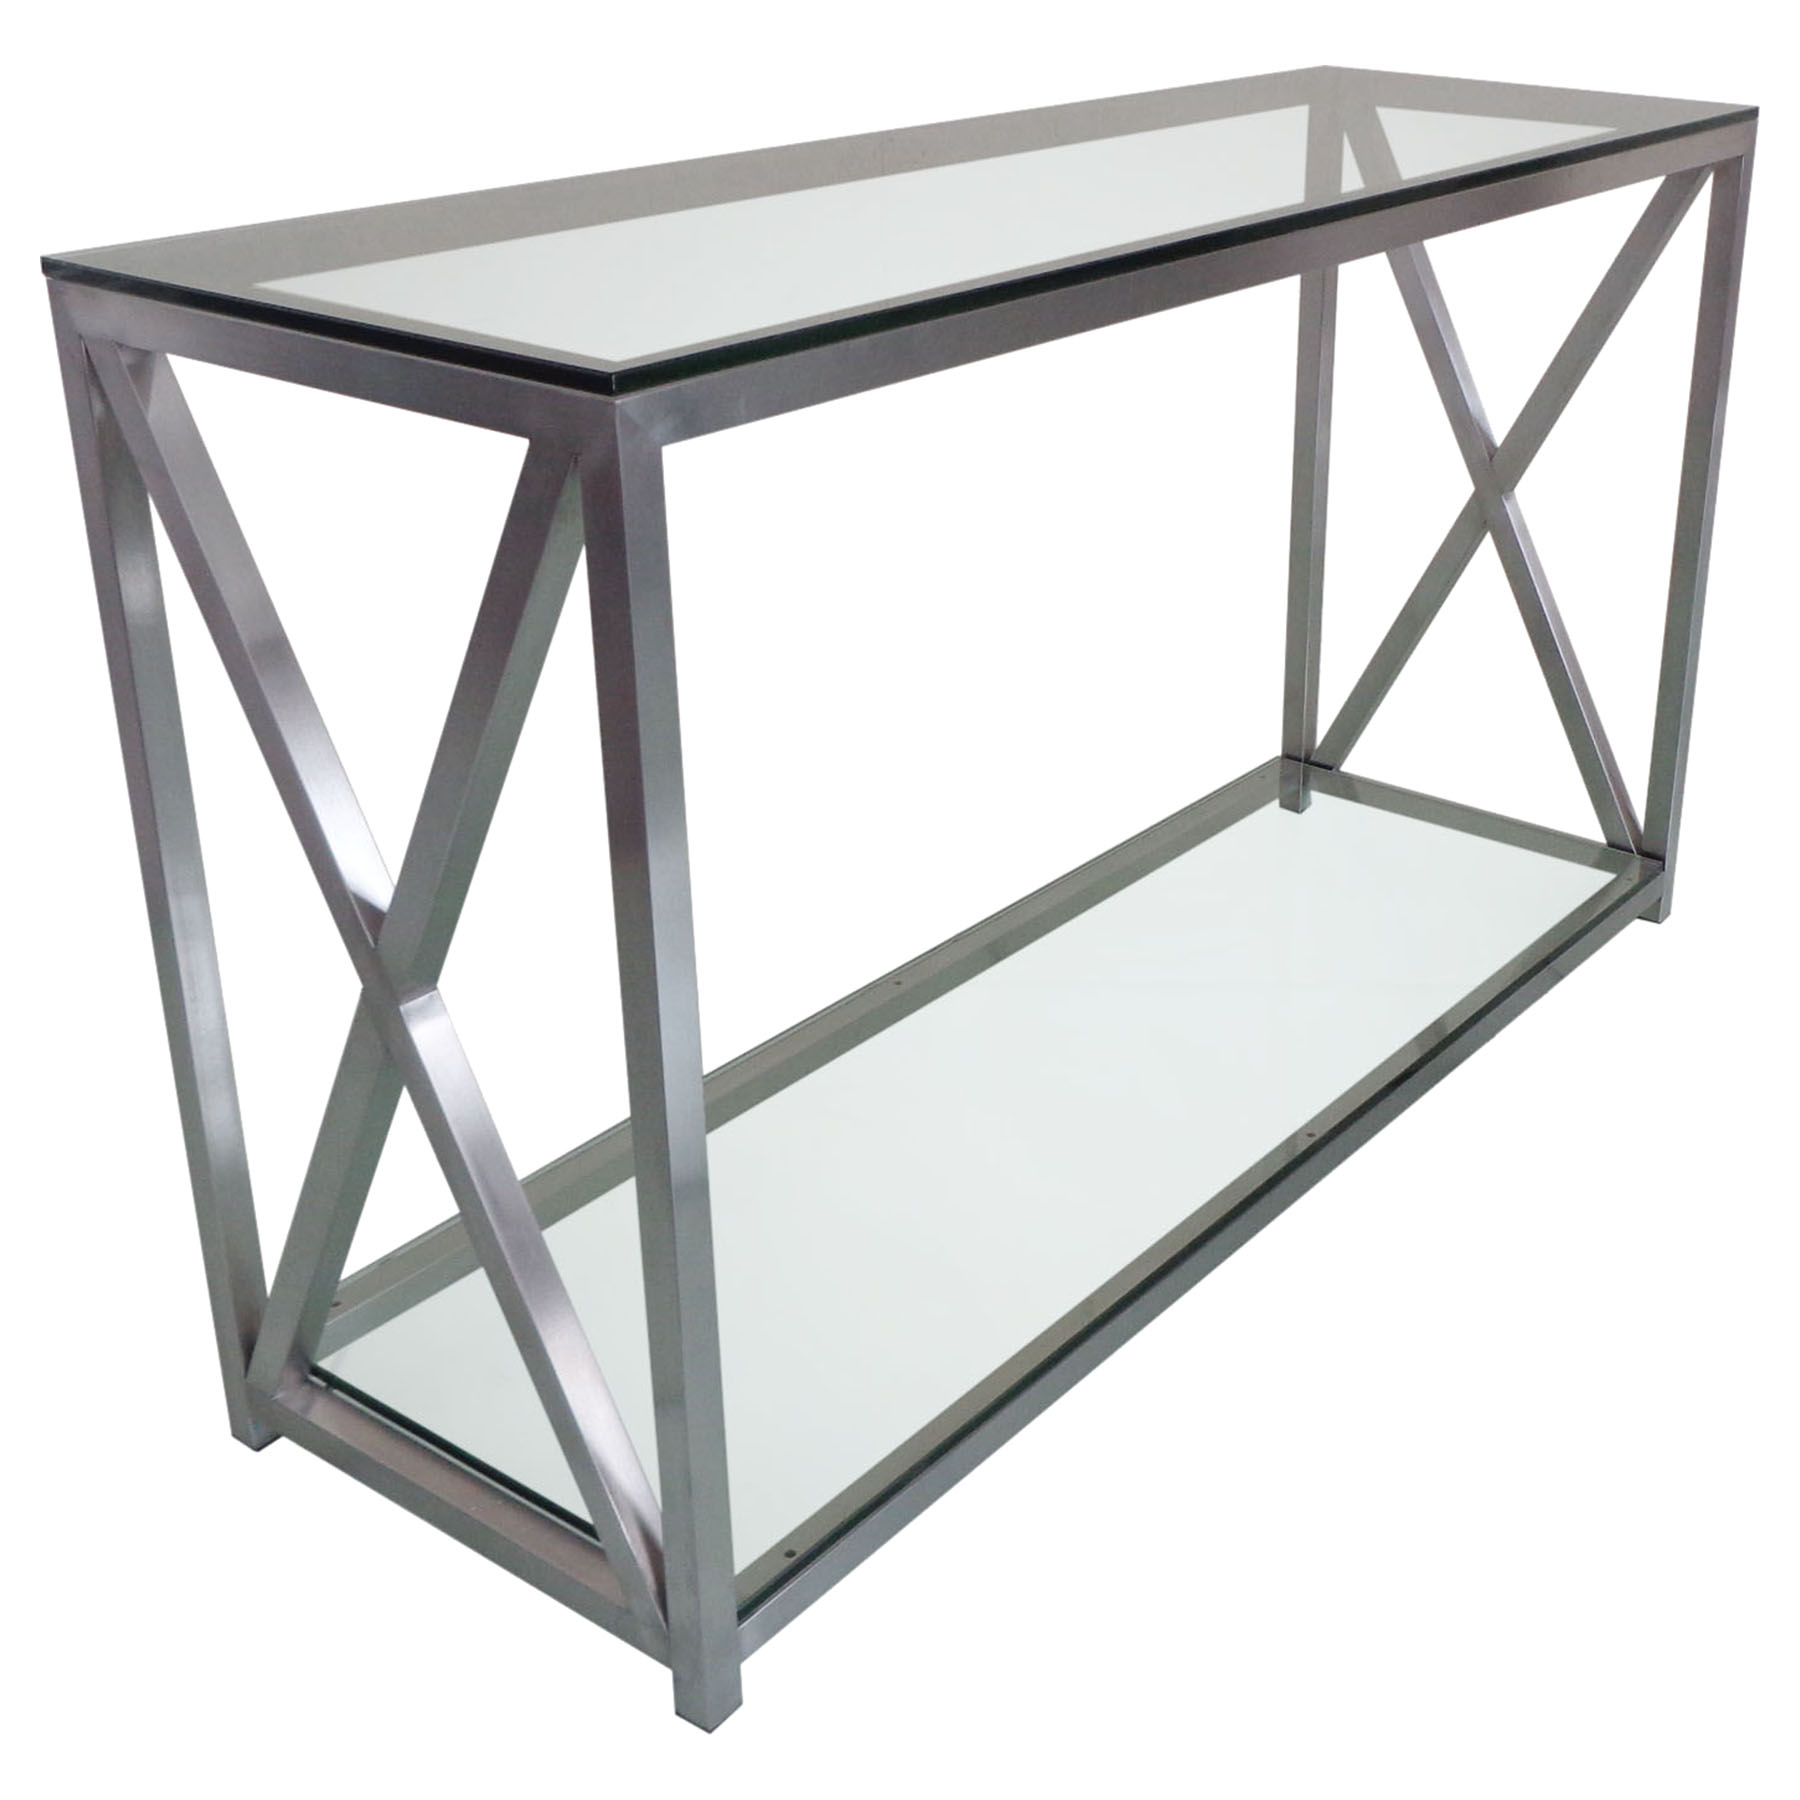 xfactor console table glass top shelf stainless steel clear - White Sofa Table